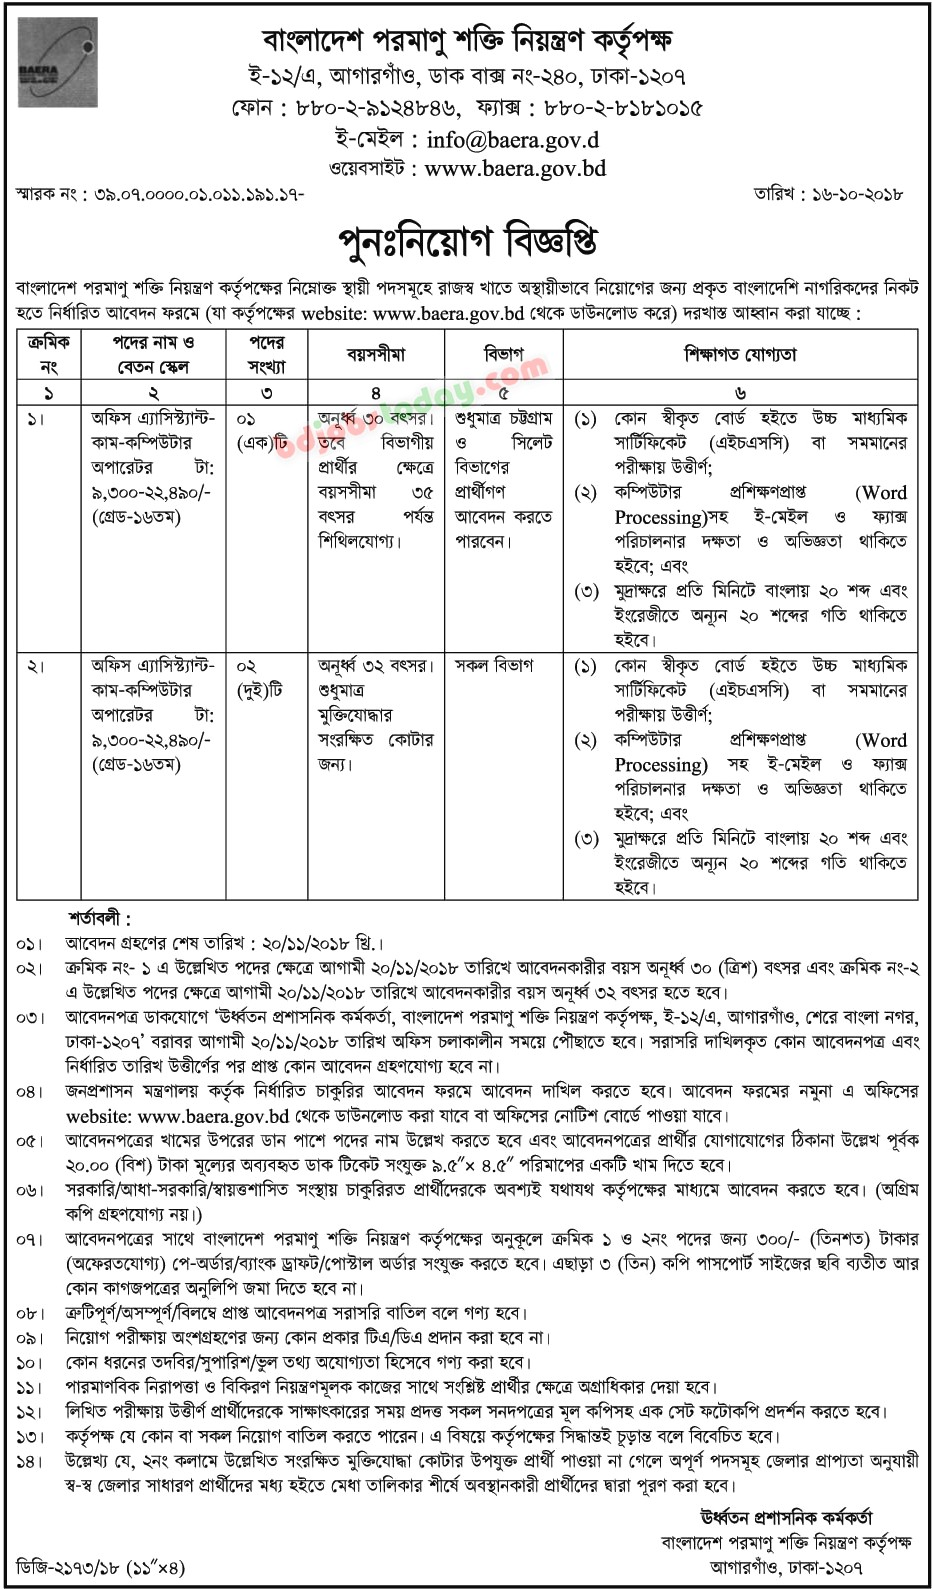 Bangladesh Atomic Energy Regulatory Authority (BAERA) jobs